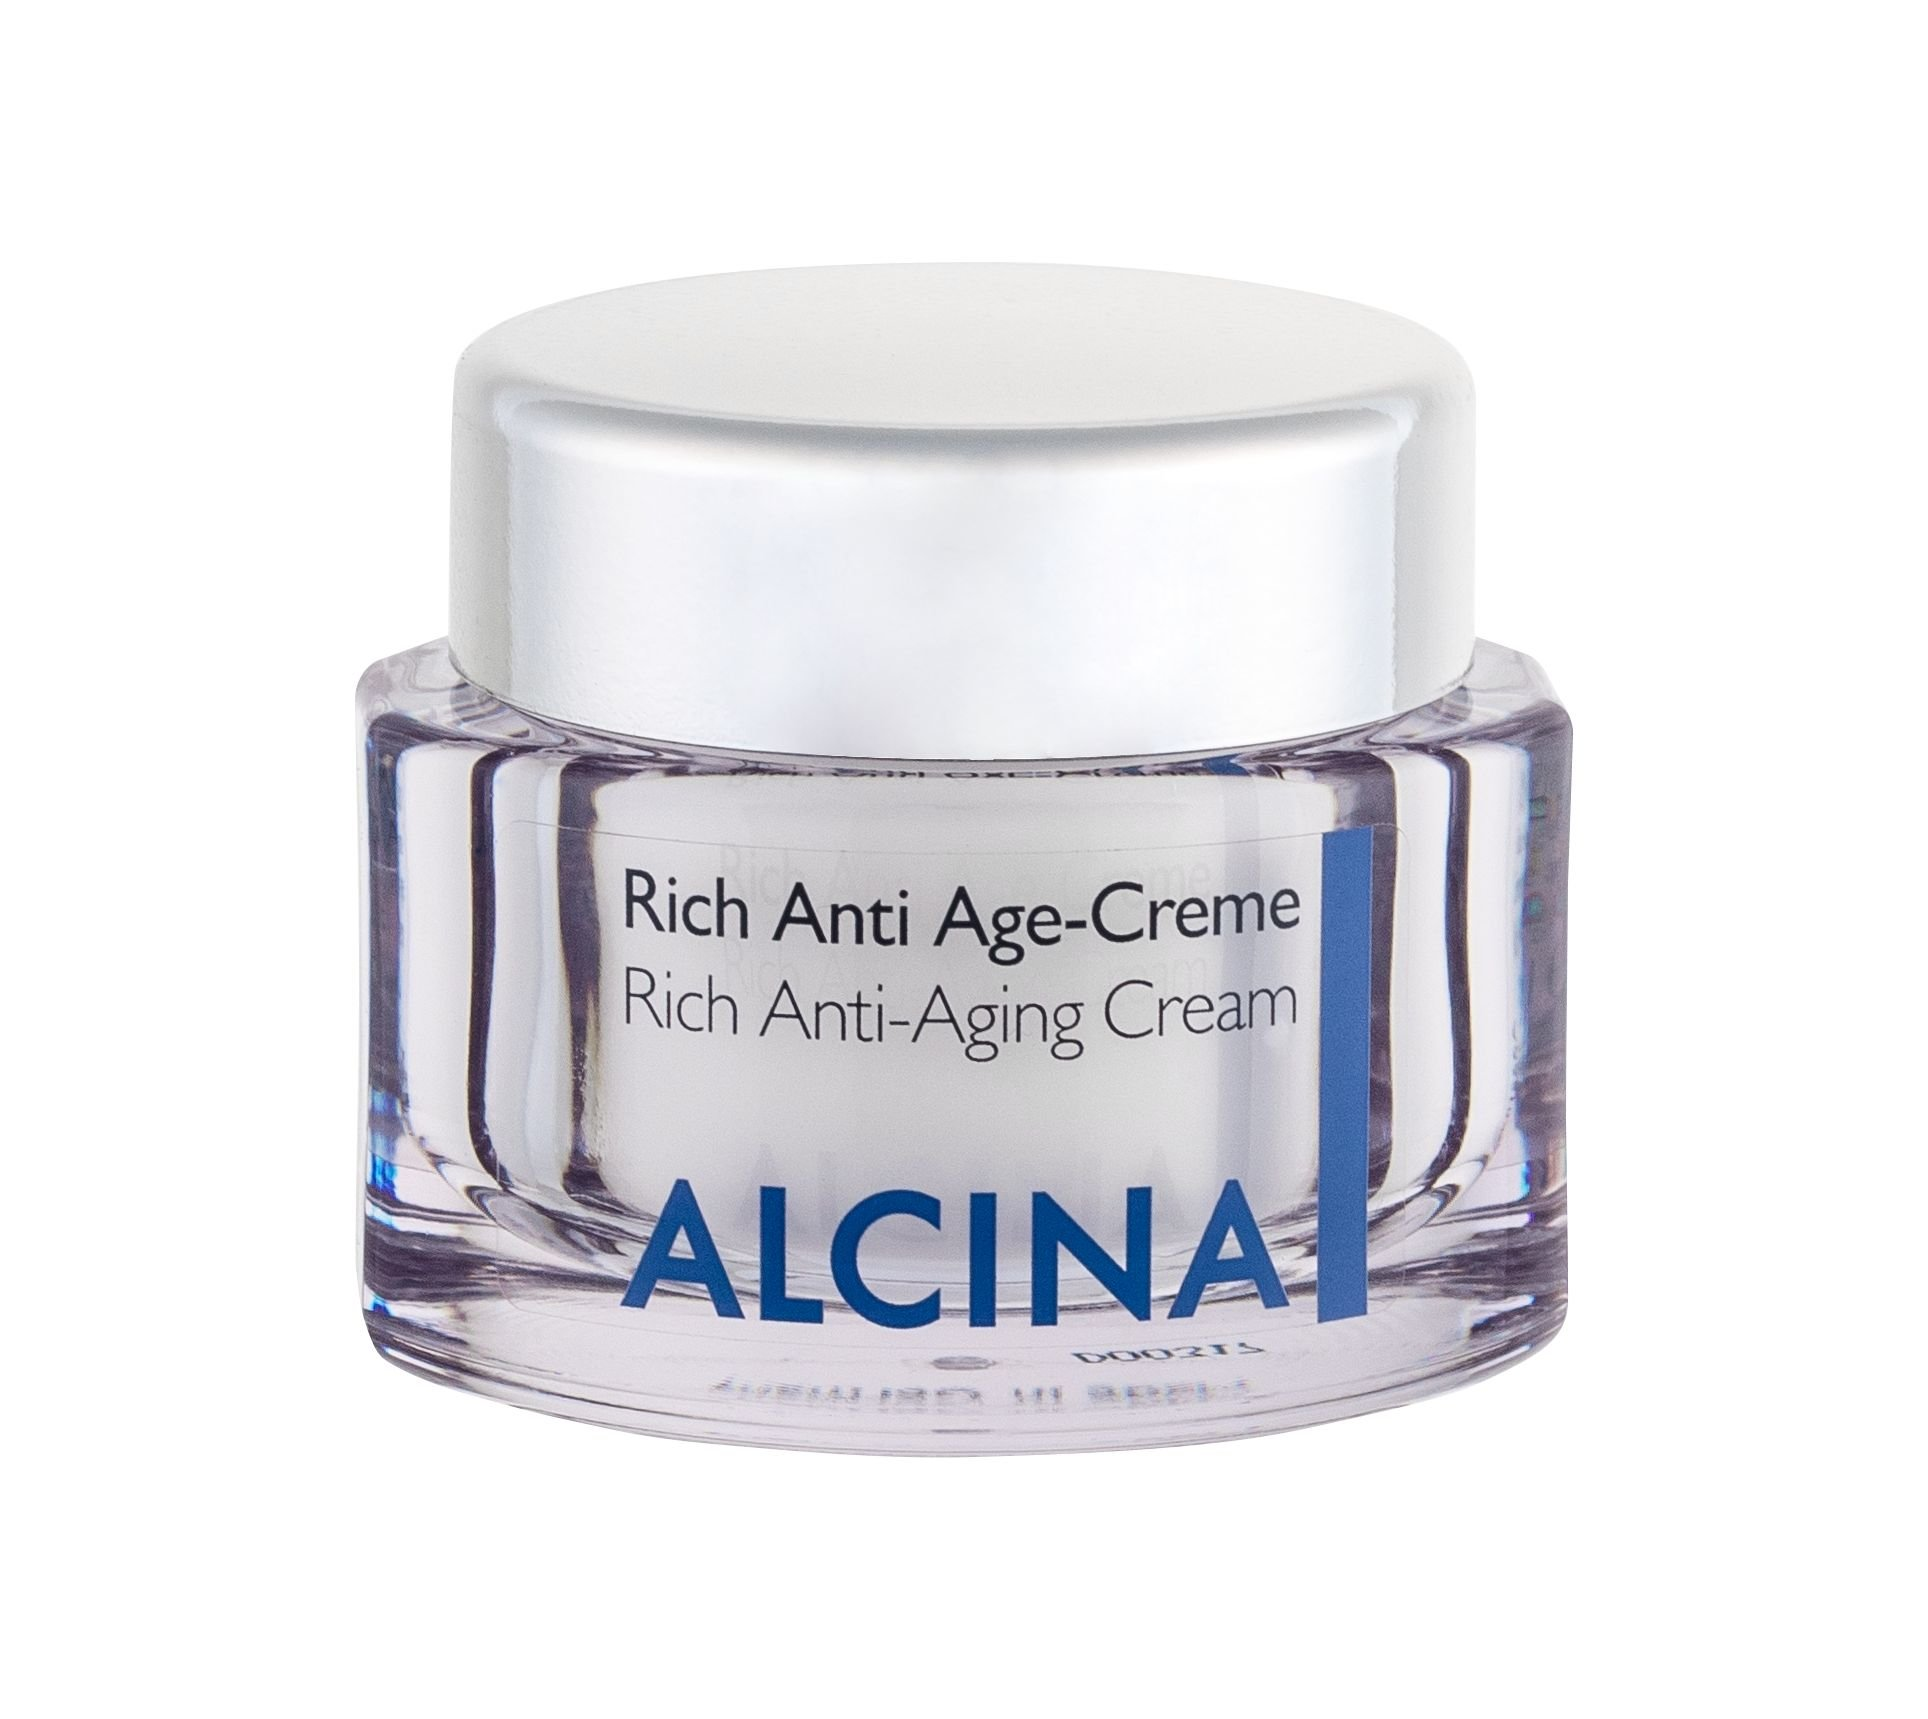 ALCINA Rich Anti-Aging Cream Day Cream 50ml